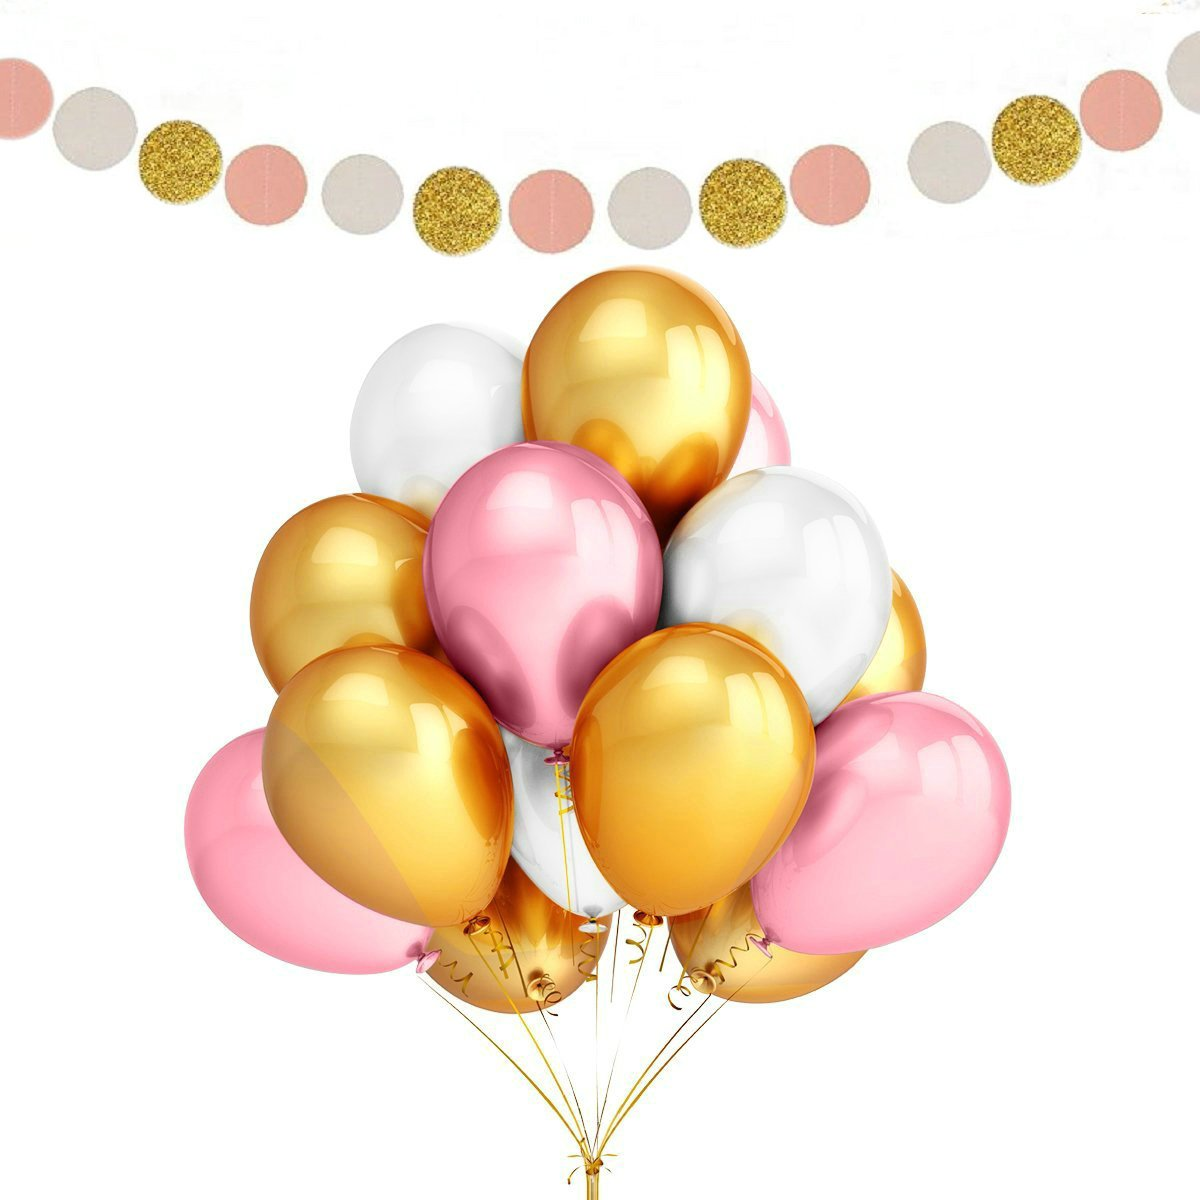 Fascola 100 Pack 12 Inches Ultra Thickness Gold & Pink & White Color Latex Party Balloons with Polka Dot Garland for Party Decorations